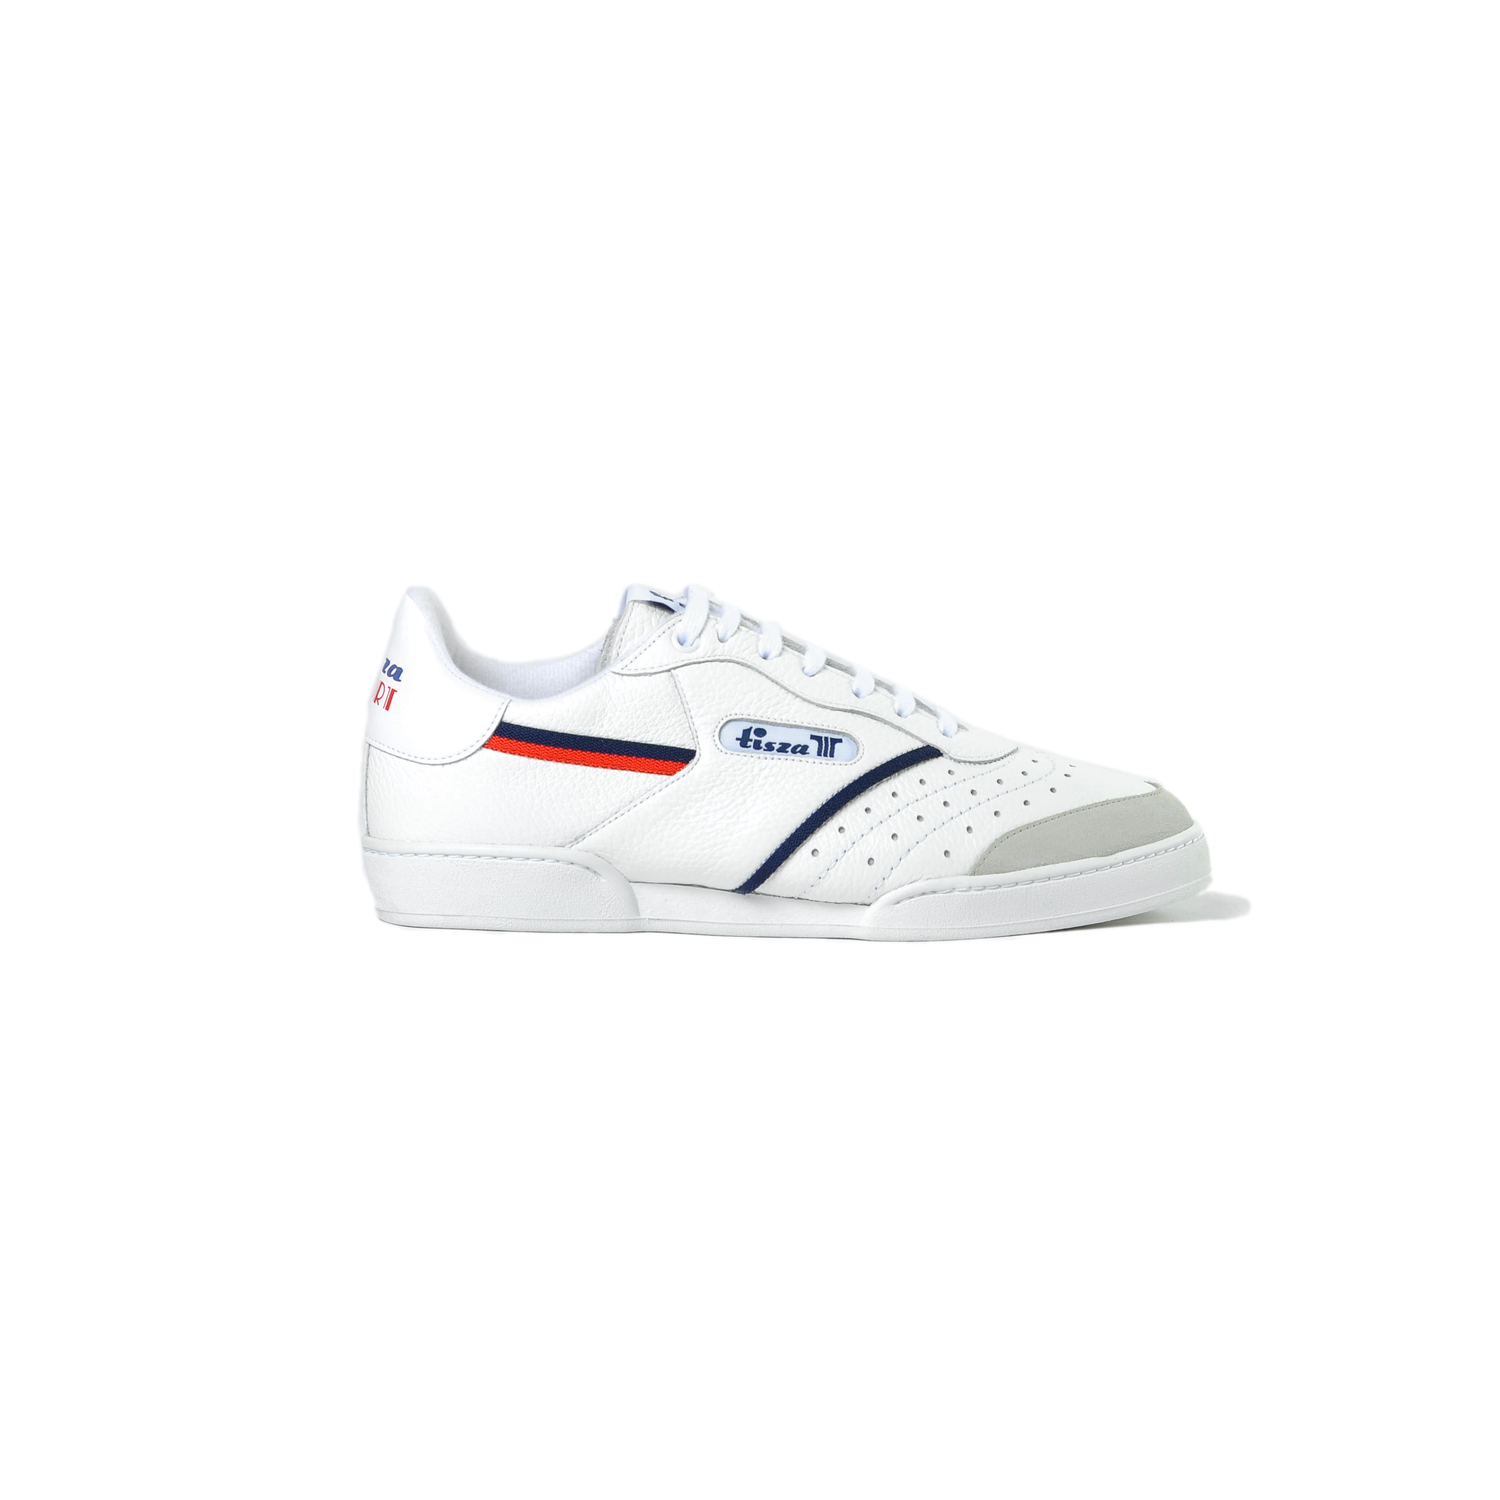 Tisza shoes - Sport - White-red-blue